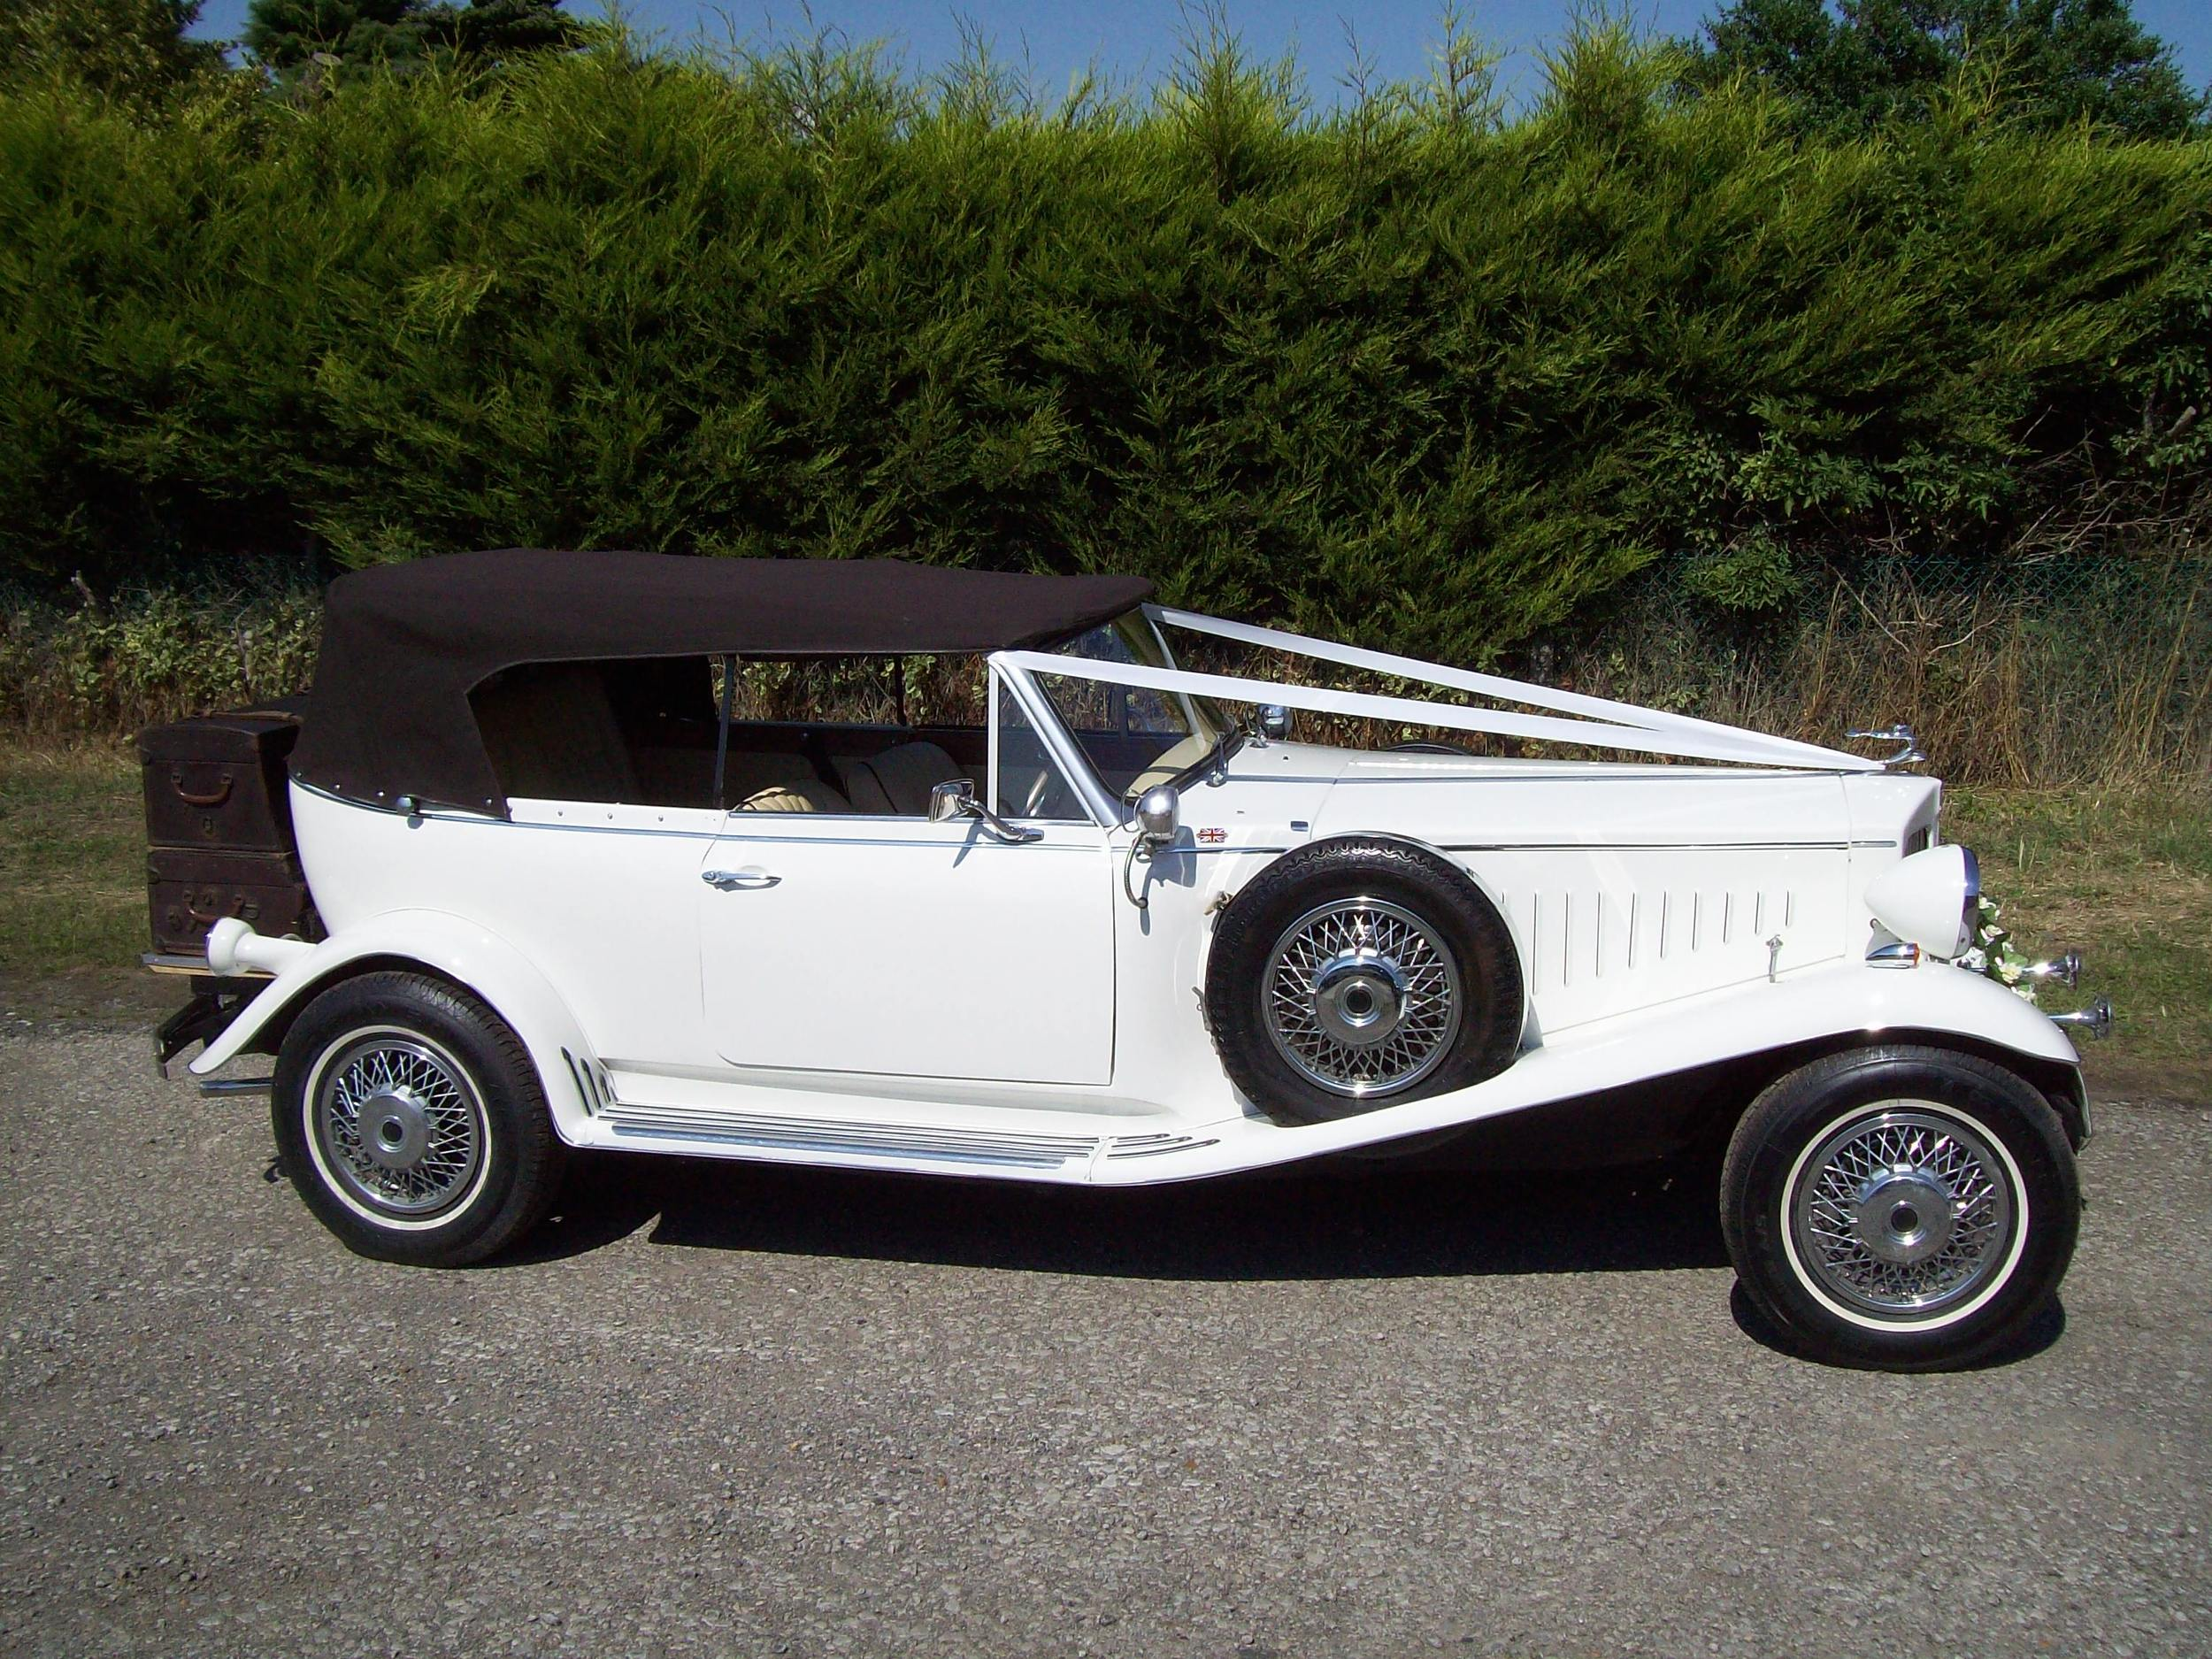 Beauford With Roof Erected & Side Windows Down